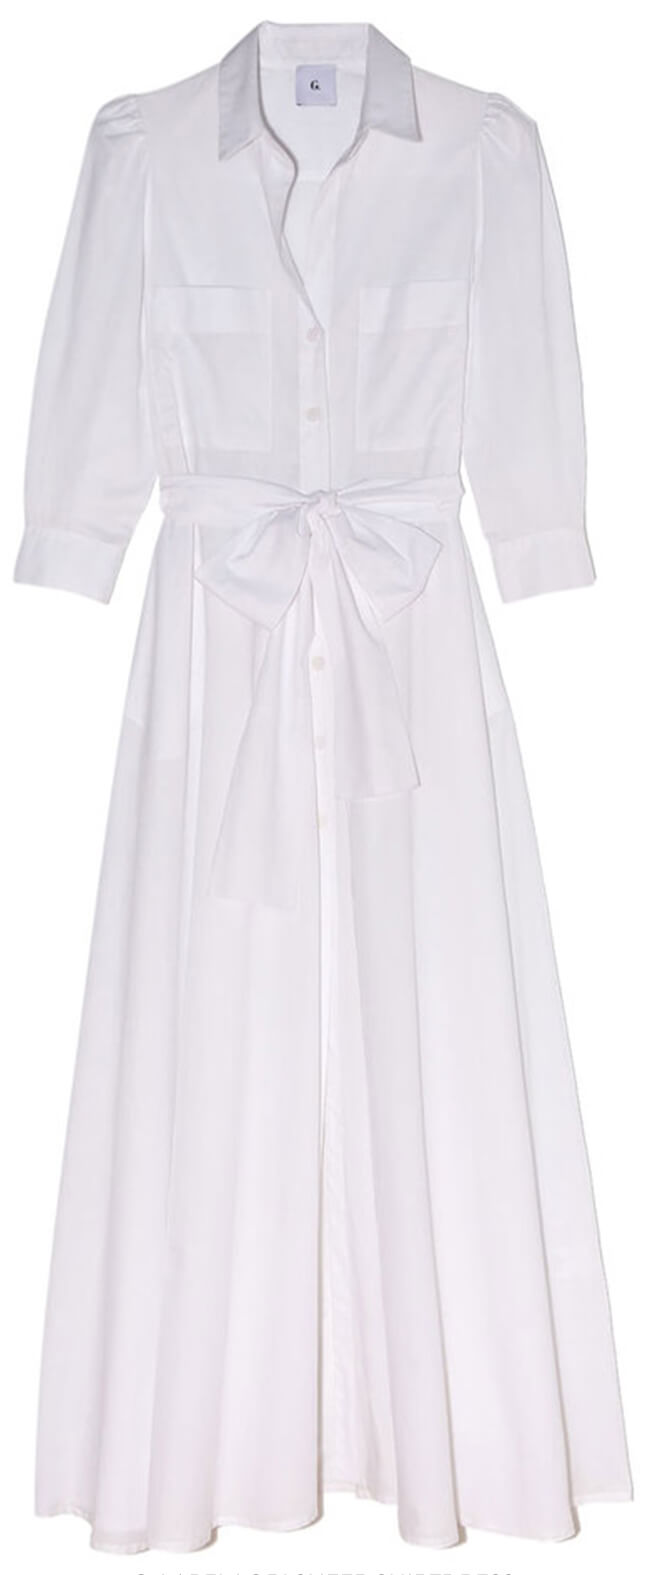 G. LABEL Lori Sheer Shirtdress